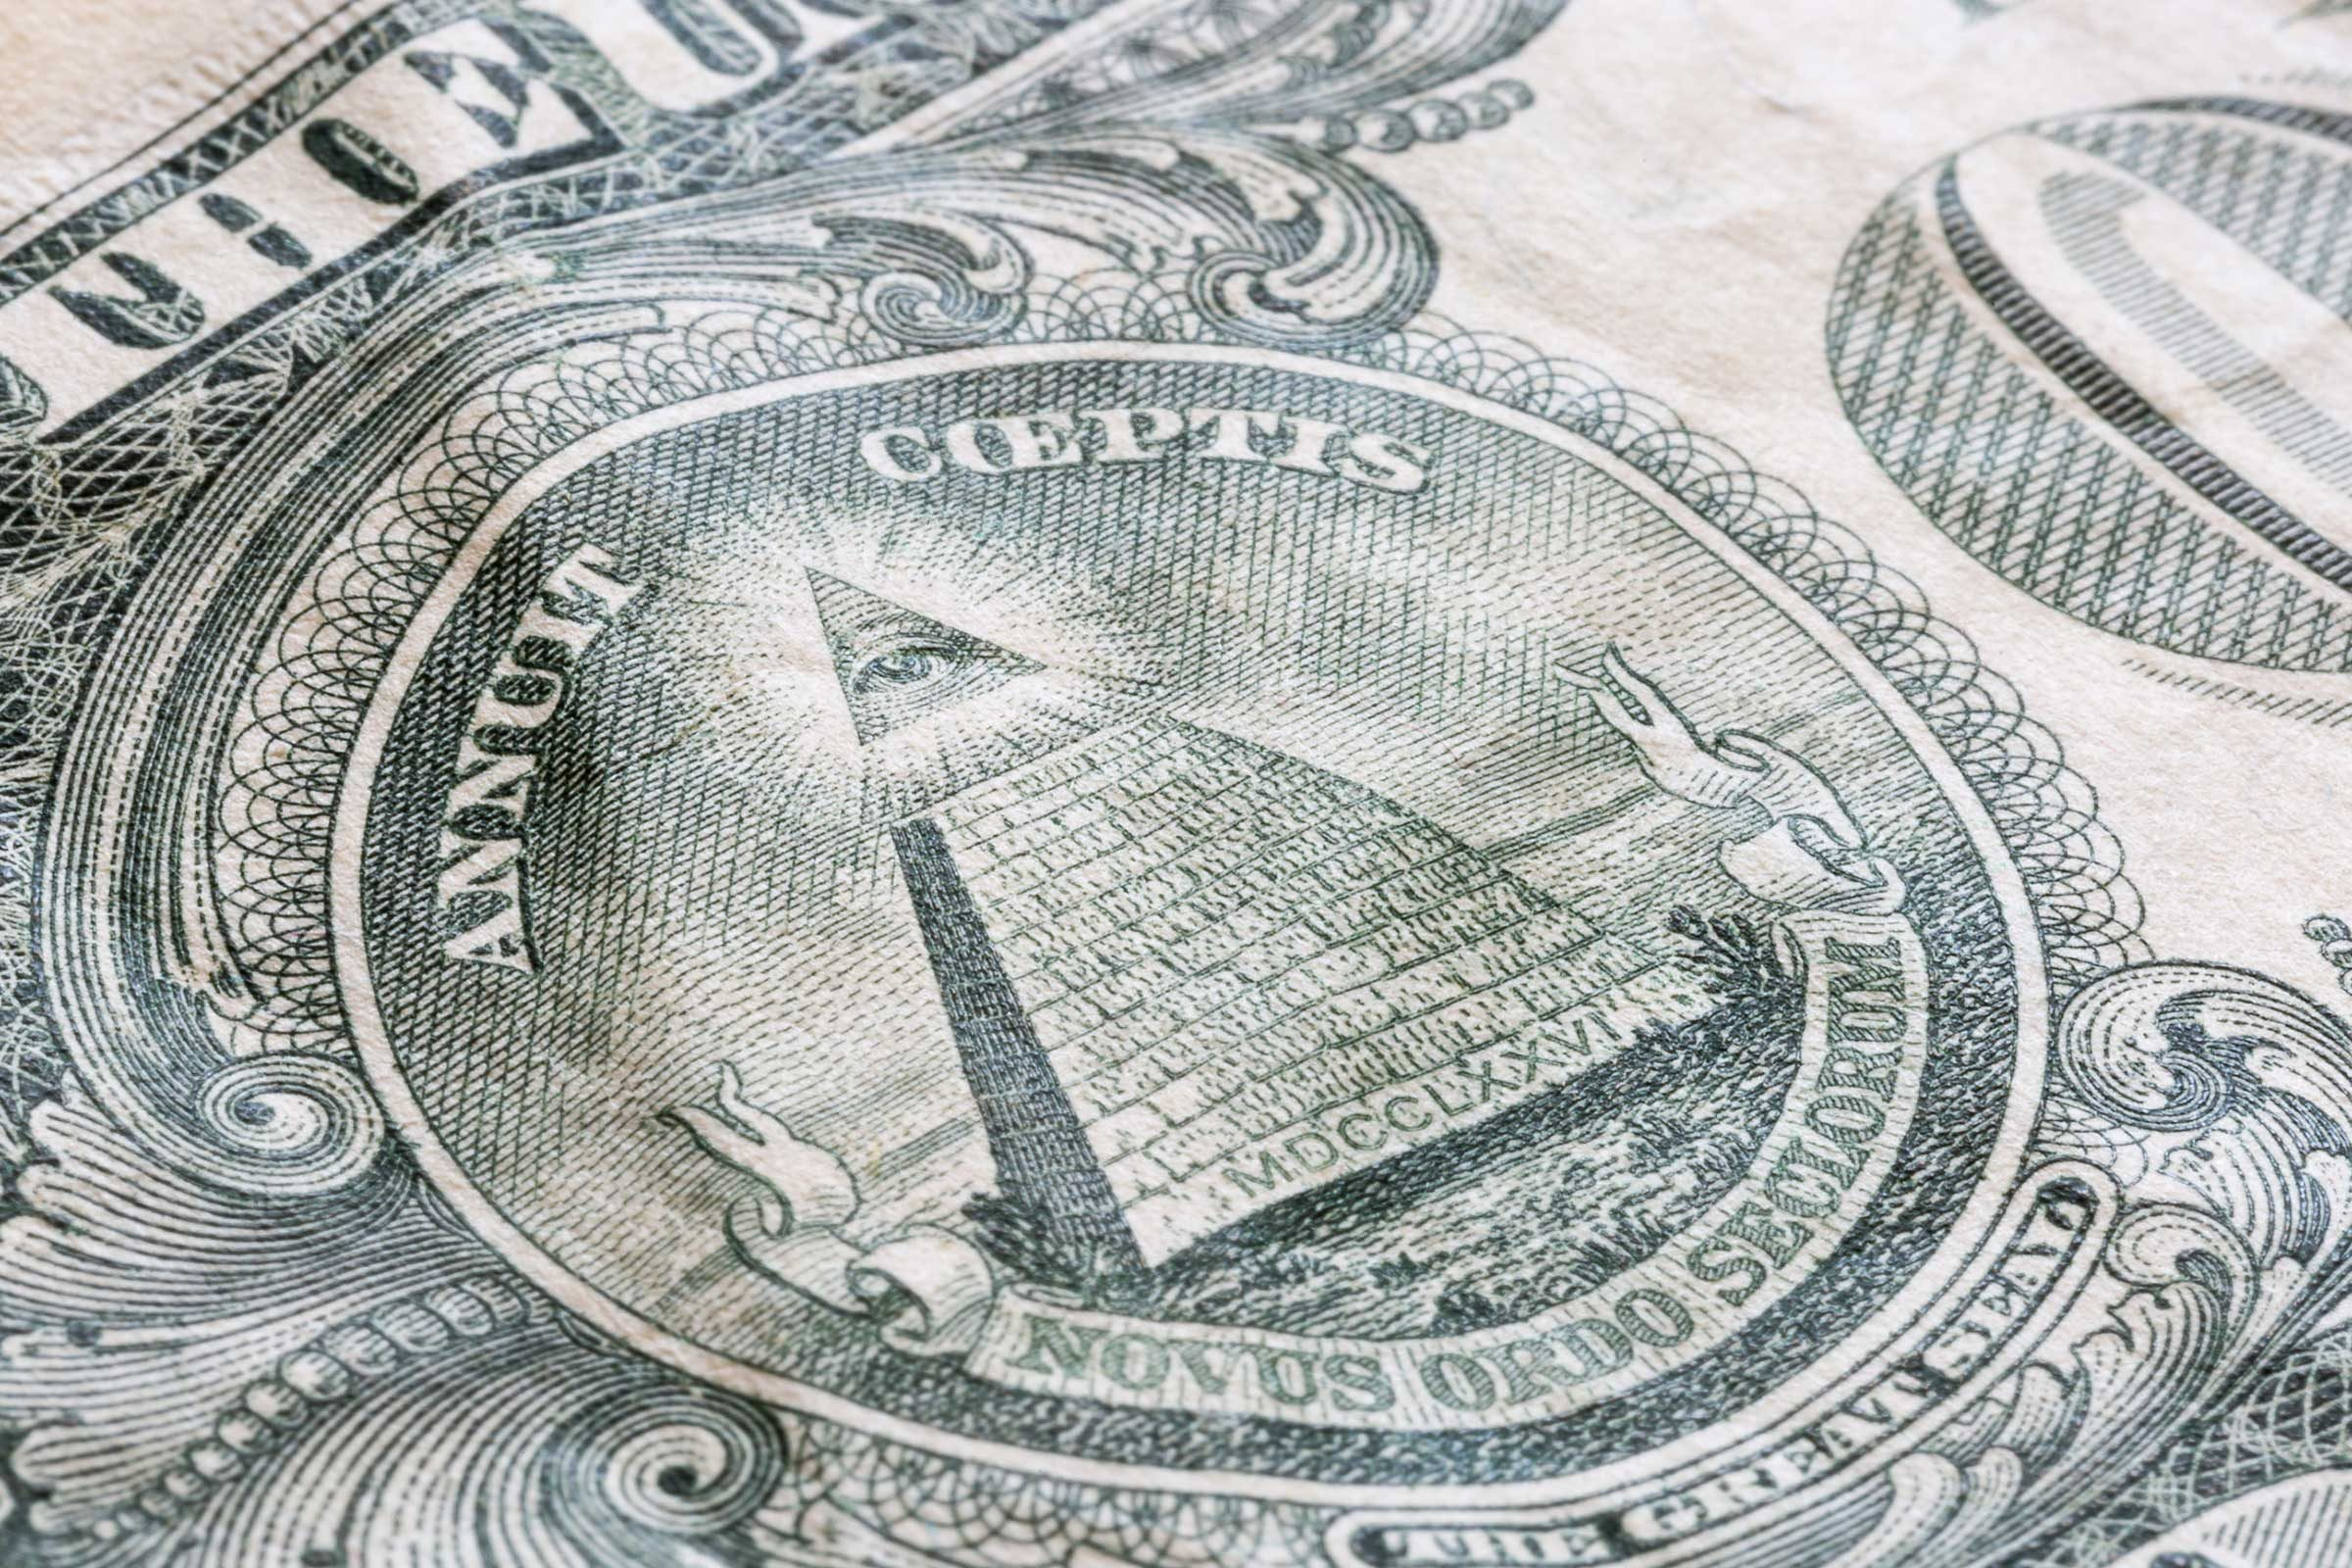 Dollar bill symbols what they mean readers digest letters on pyramids base biocorpaavc Images